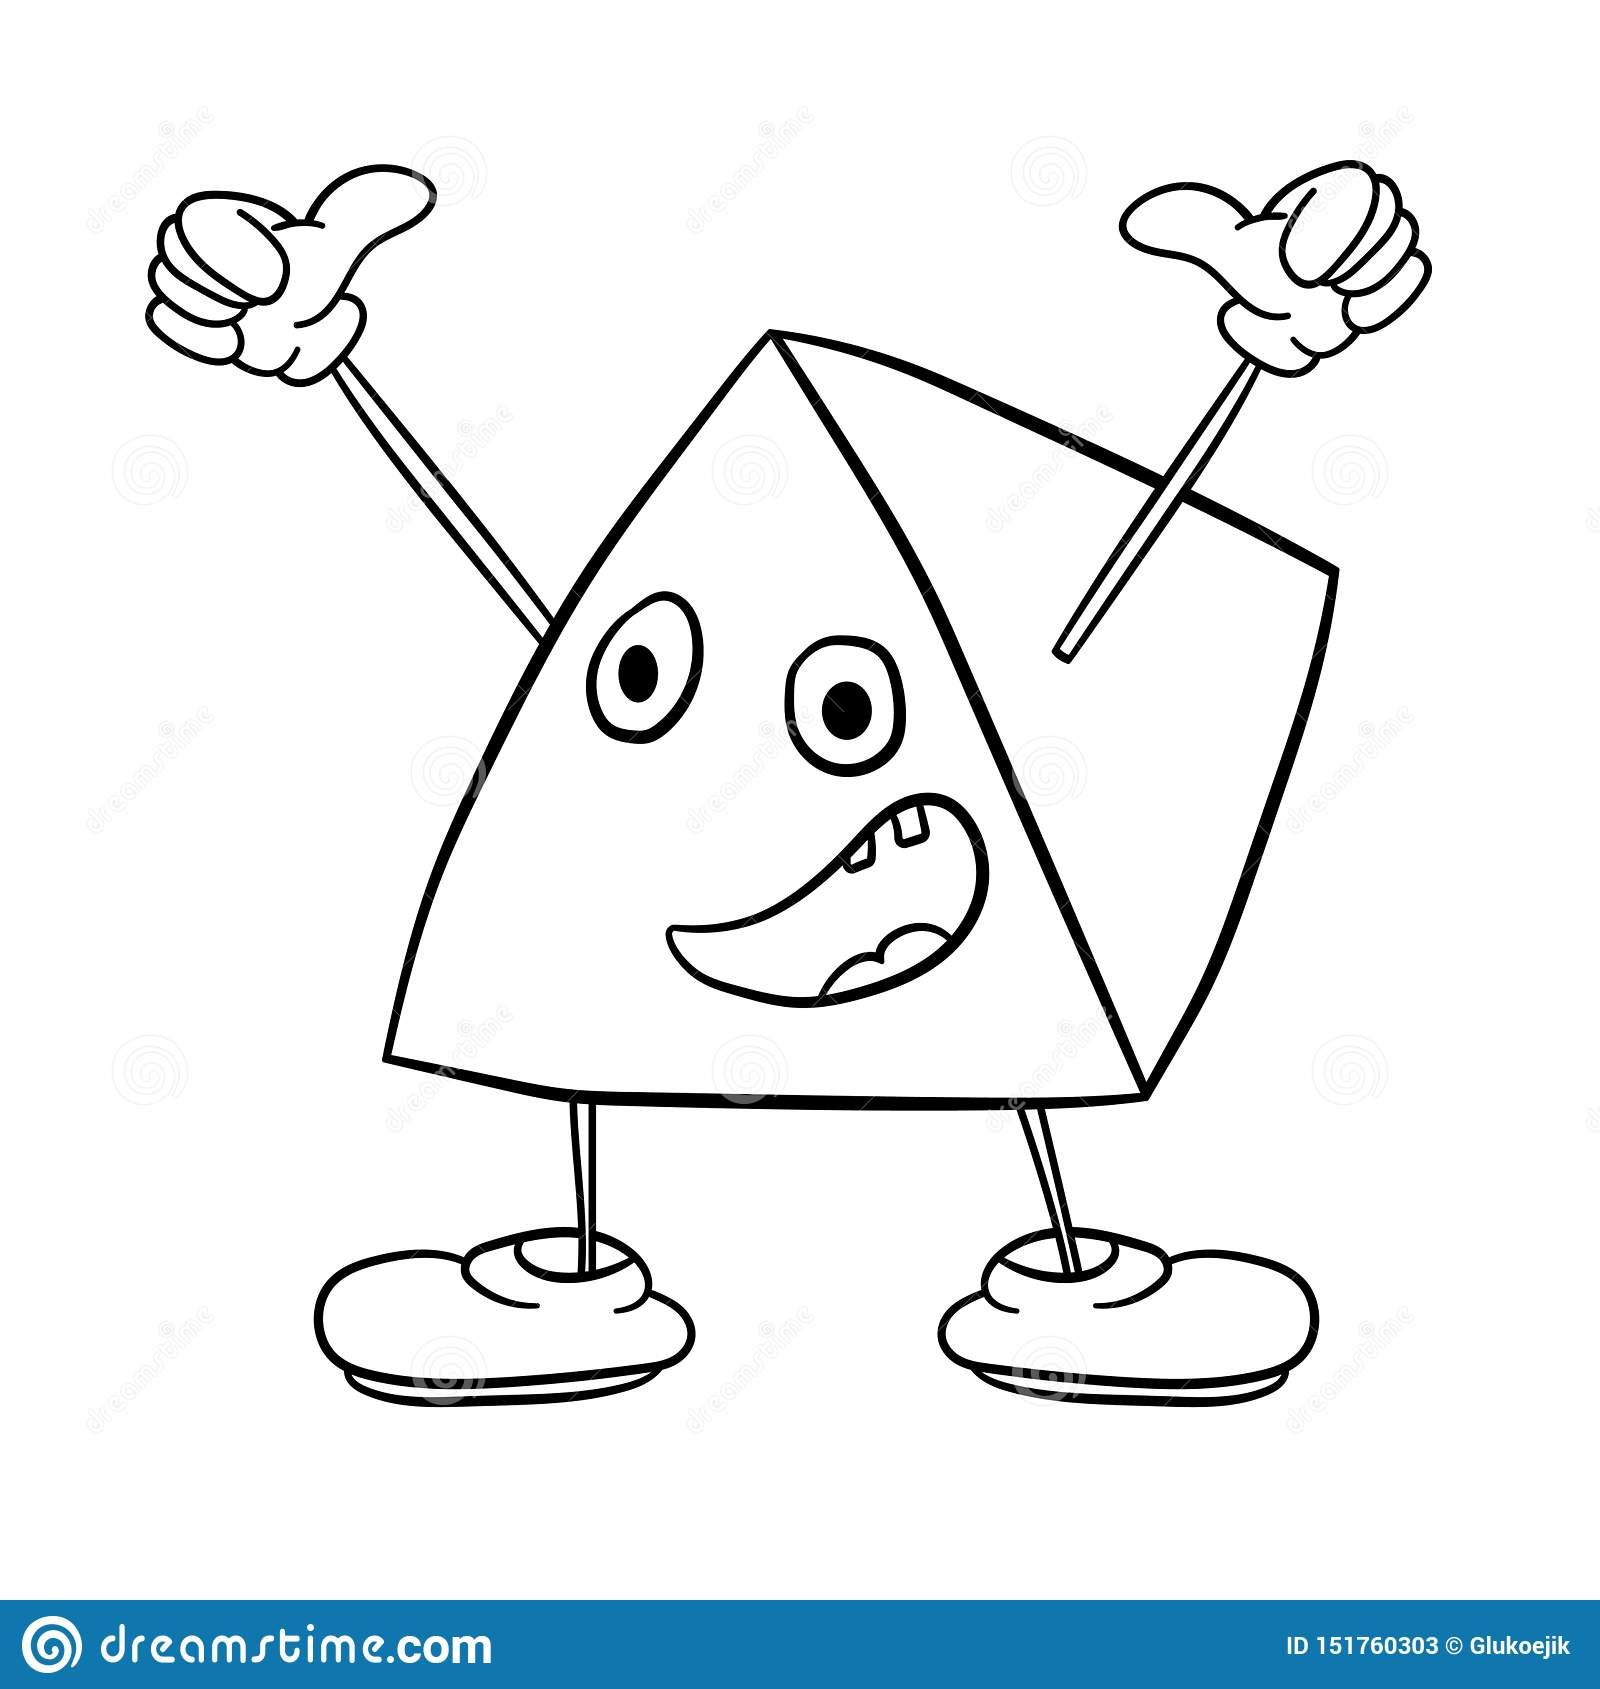 Funny Triangle Smiley With Legs And Eyes Waving His Arms And ...